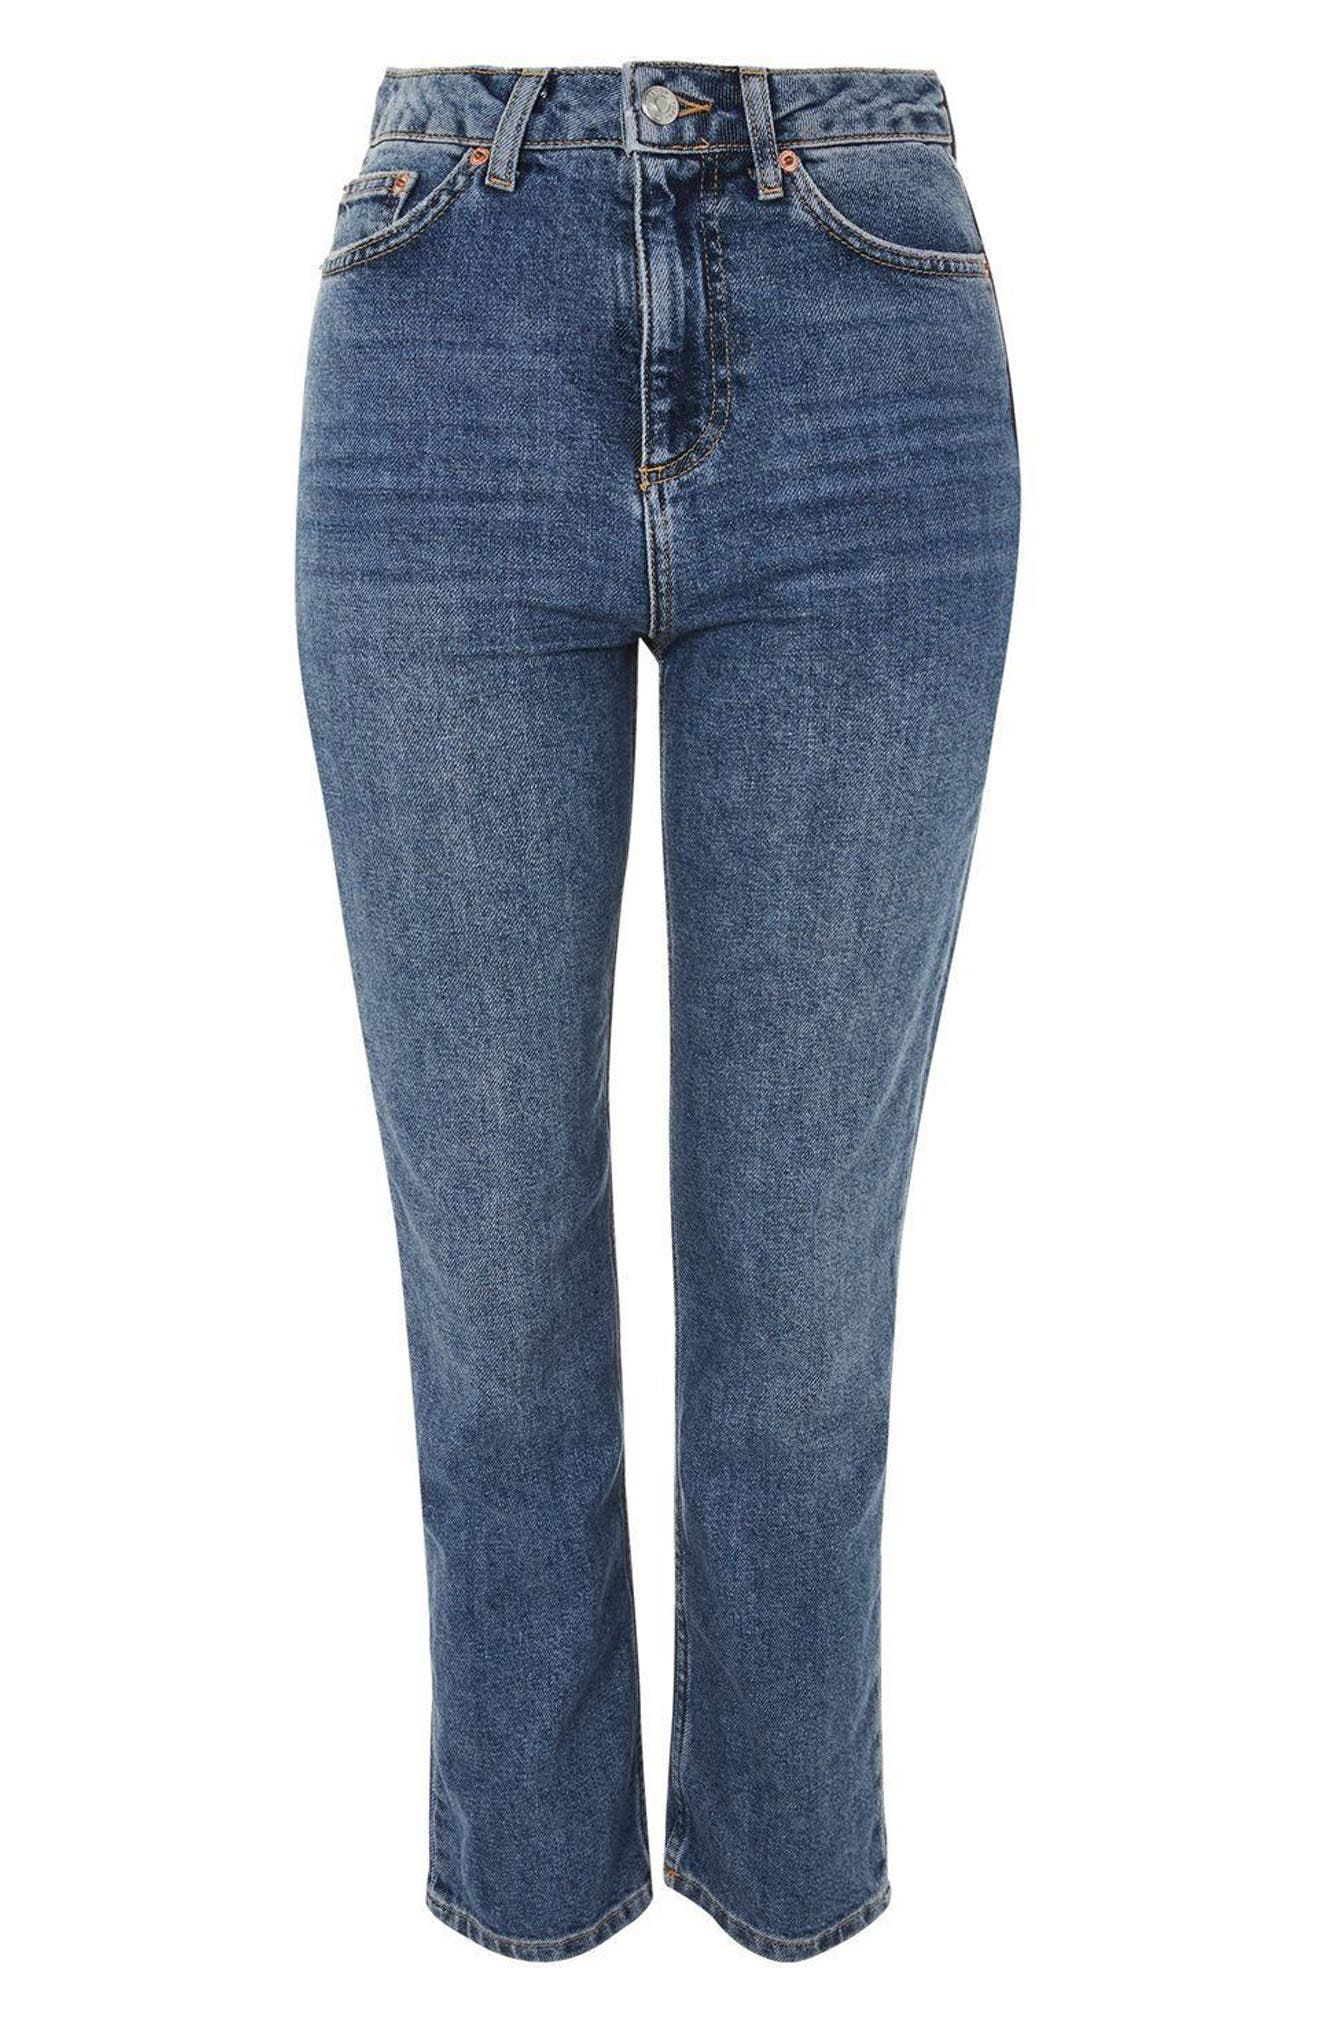 TOPSHOP, Straight Leg Jeans, Alternate thumbnail 6, color, MID DENIM